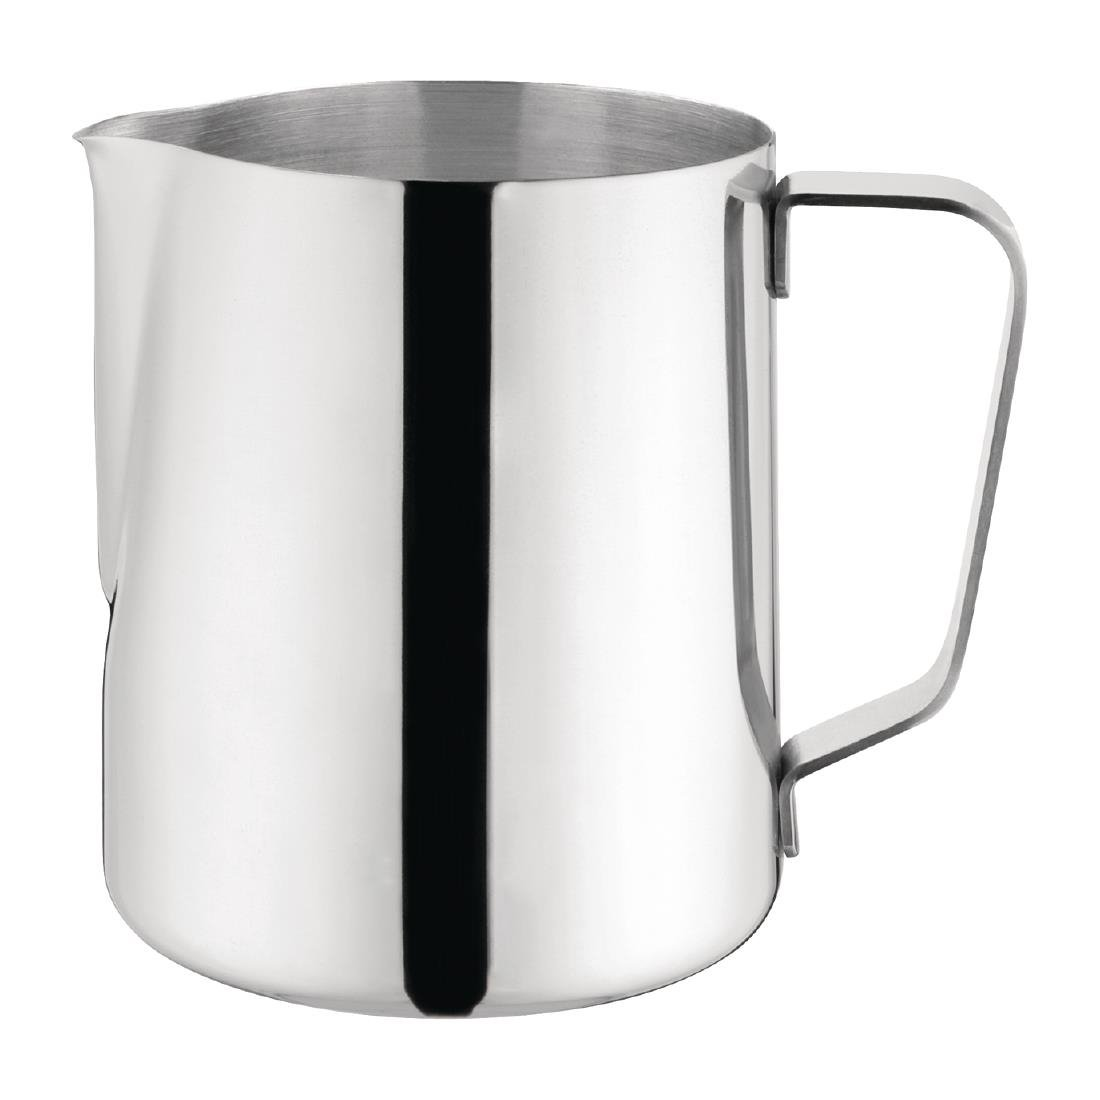 Milk or Water Jug 32oz/910ml